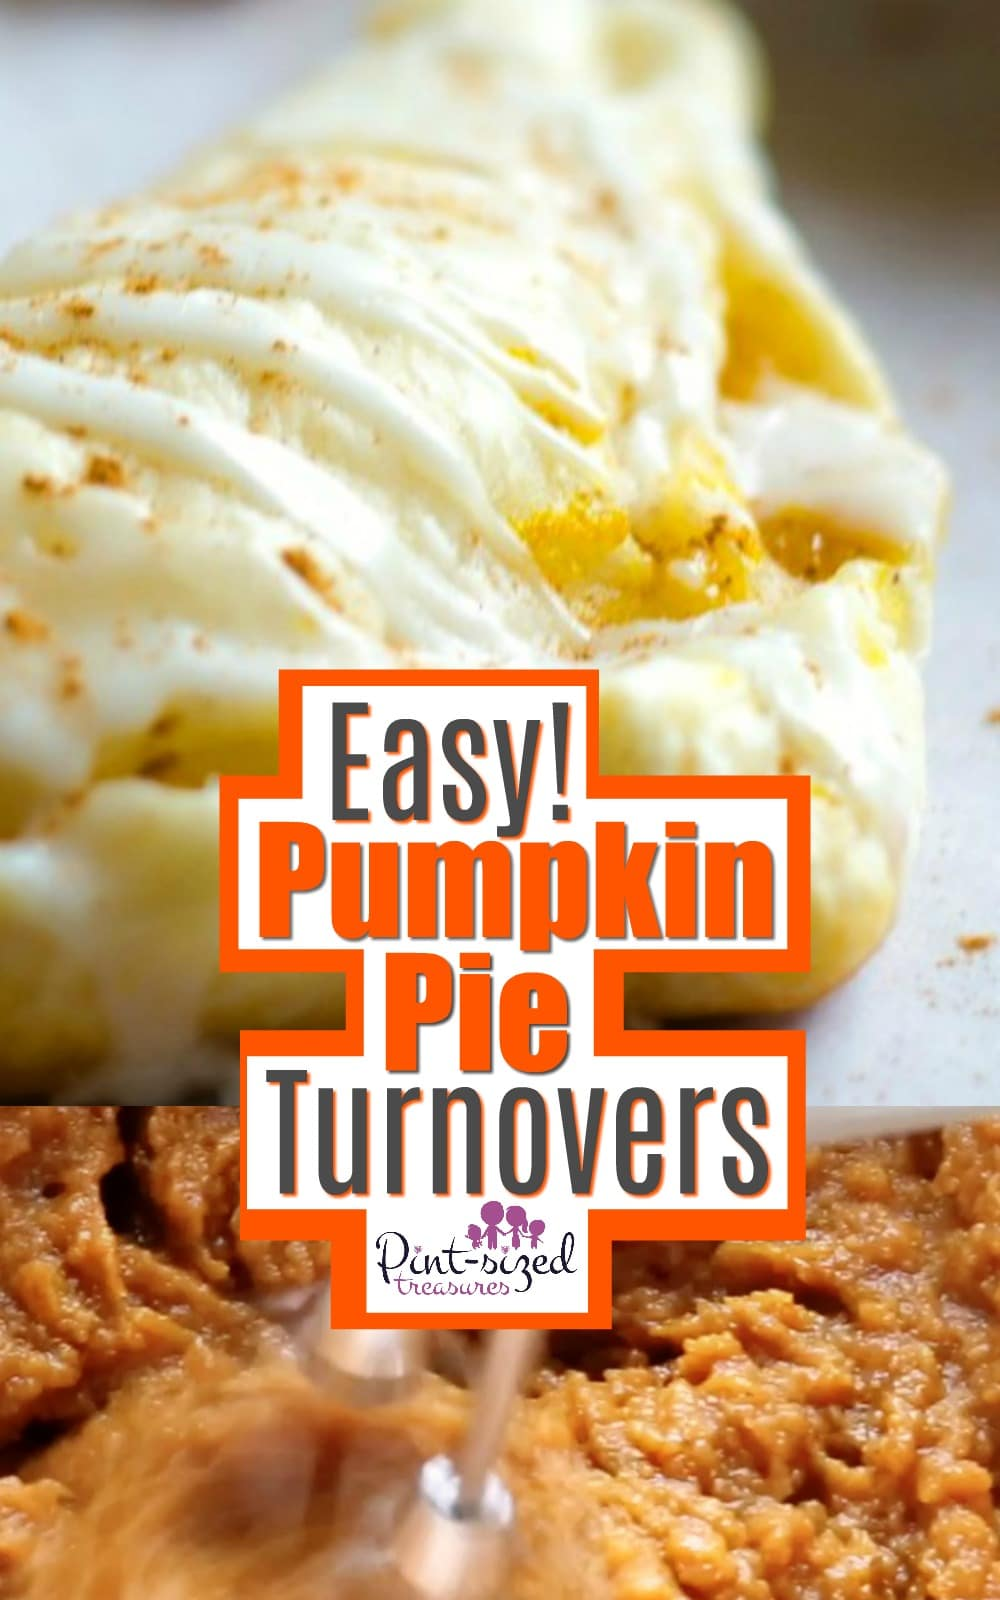 Easy Pumpkin Pie Turnovers Recipe